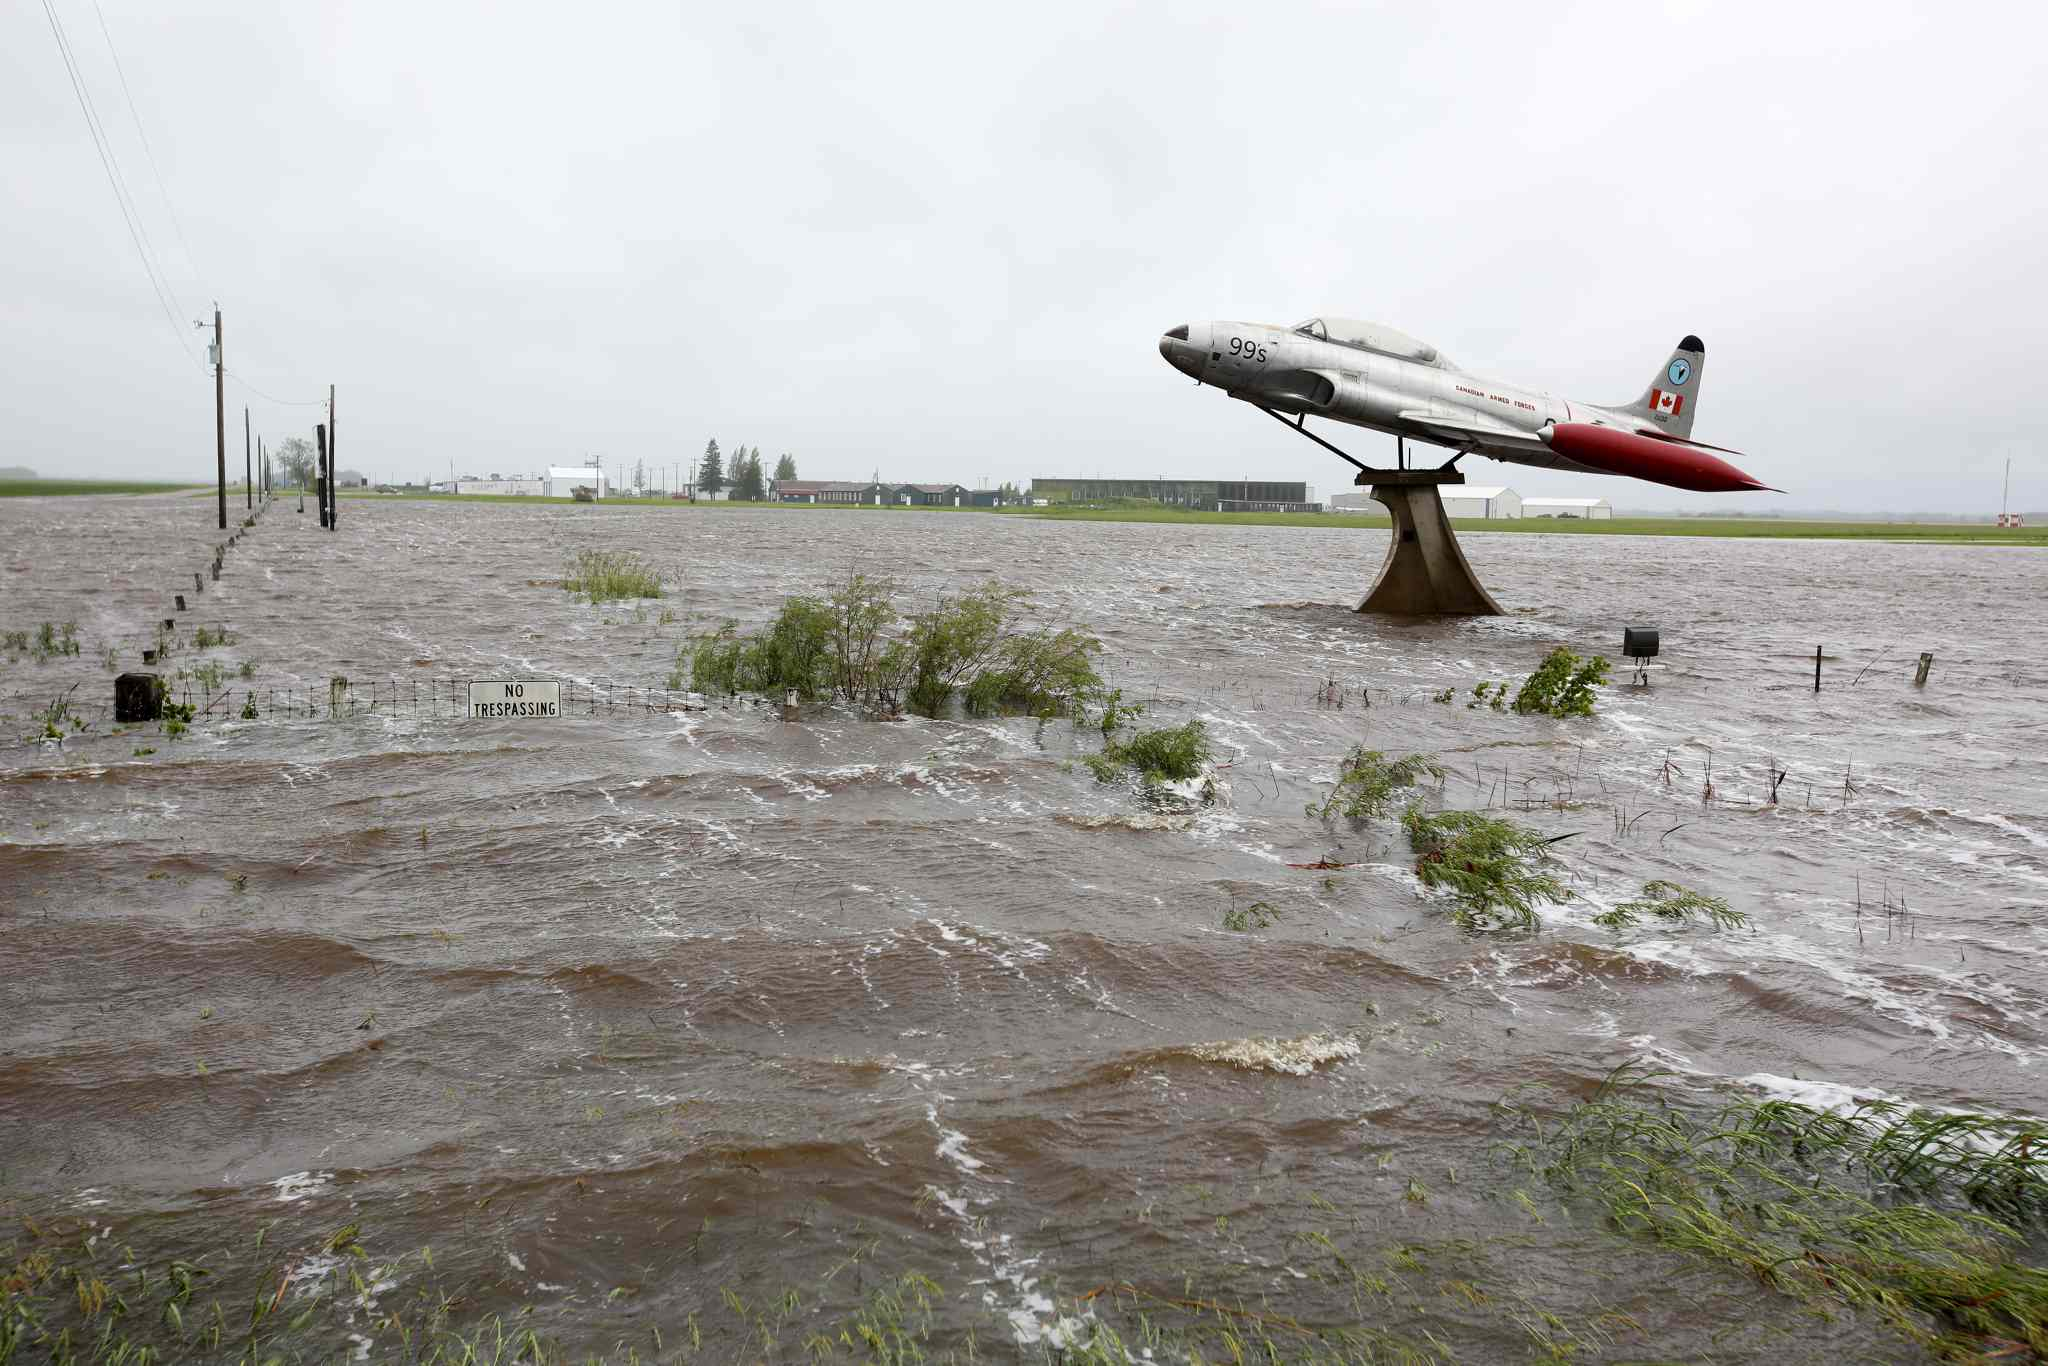 Flood waters surround a T33 fighter jet on display along Highway 10 and Sandison Road near the Brandon Municipal Airport on Sunday.  Rain fell almost non-stop throughout the weekend, and the airport was closed due to the flooding.